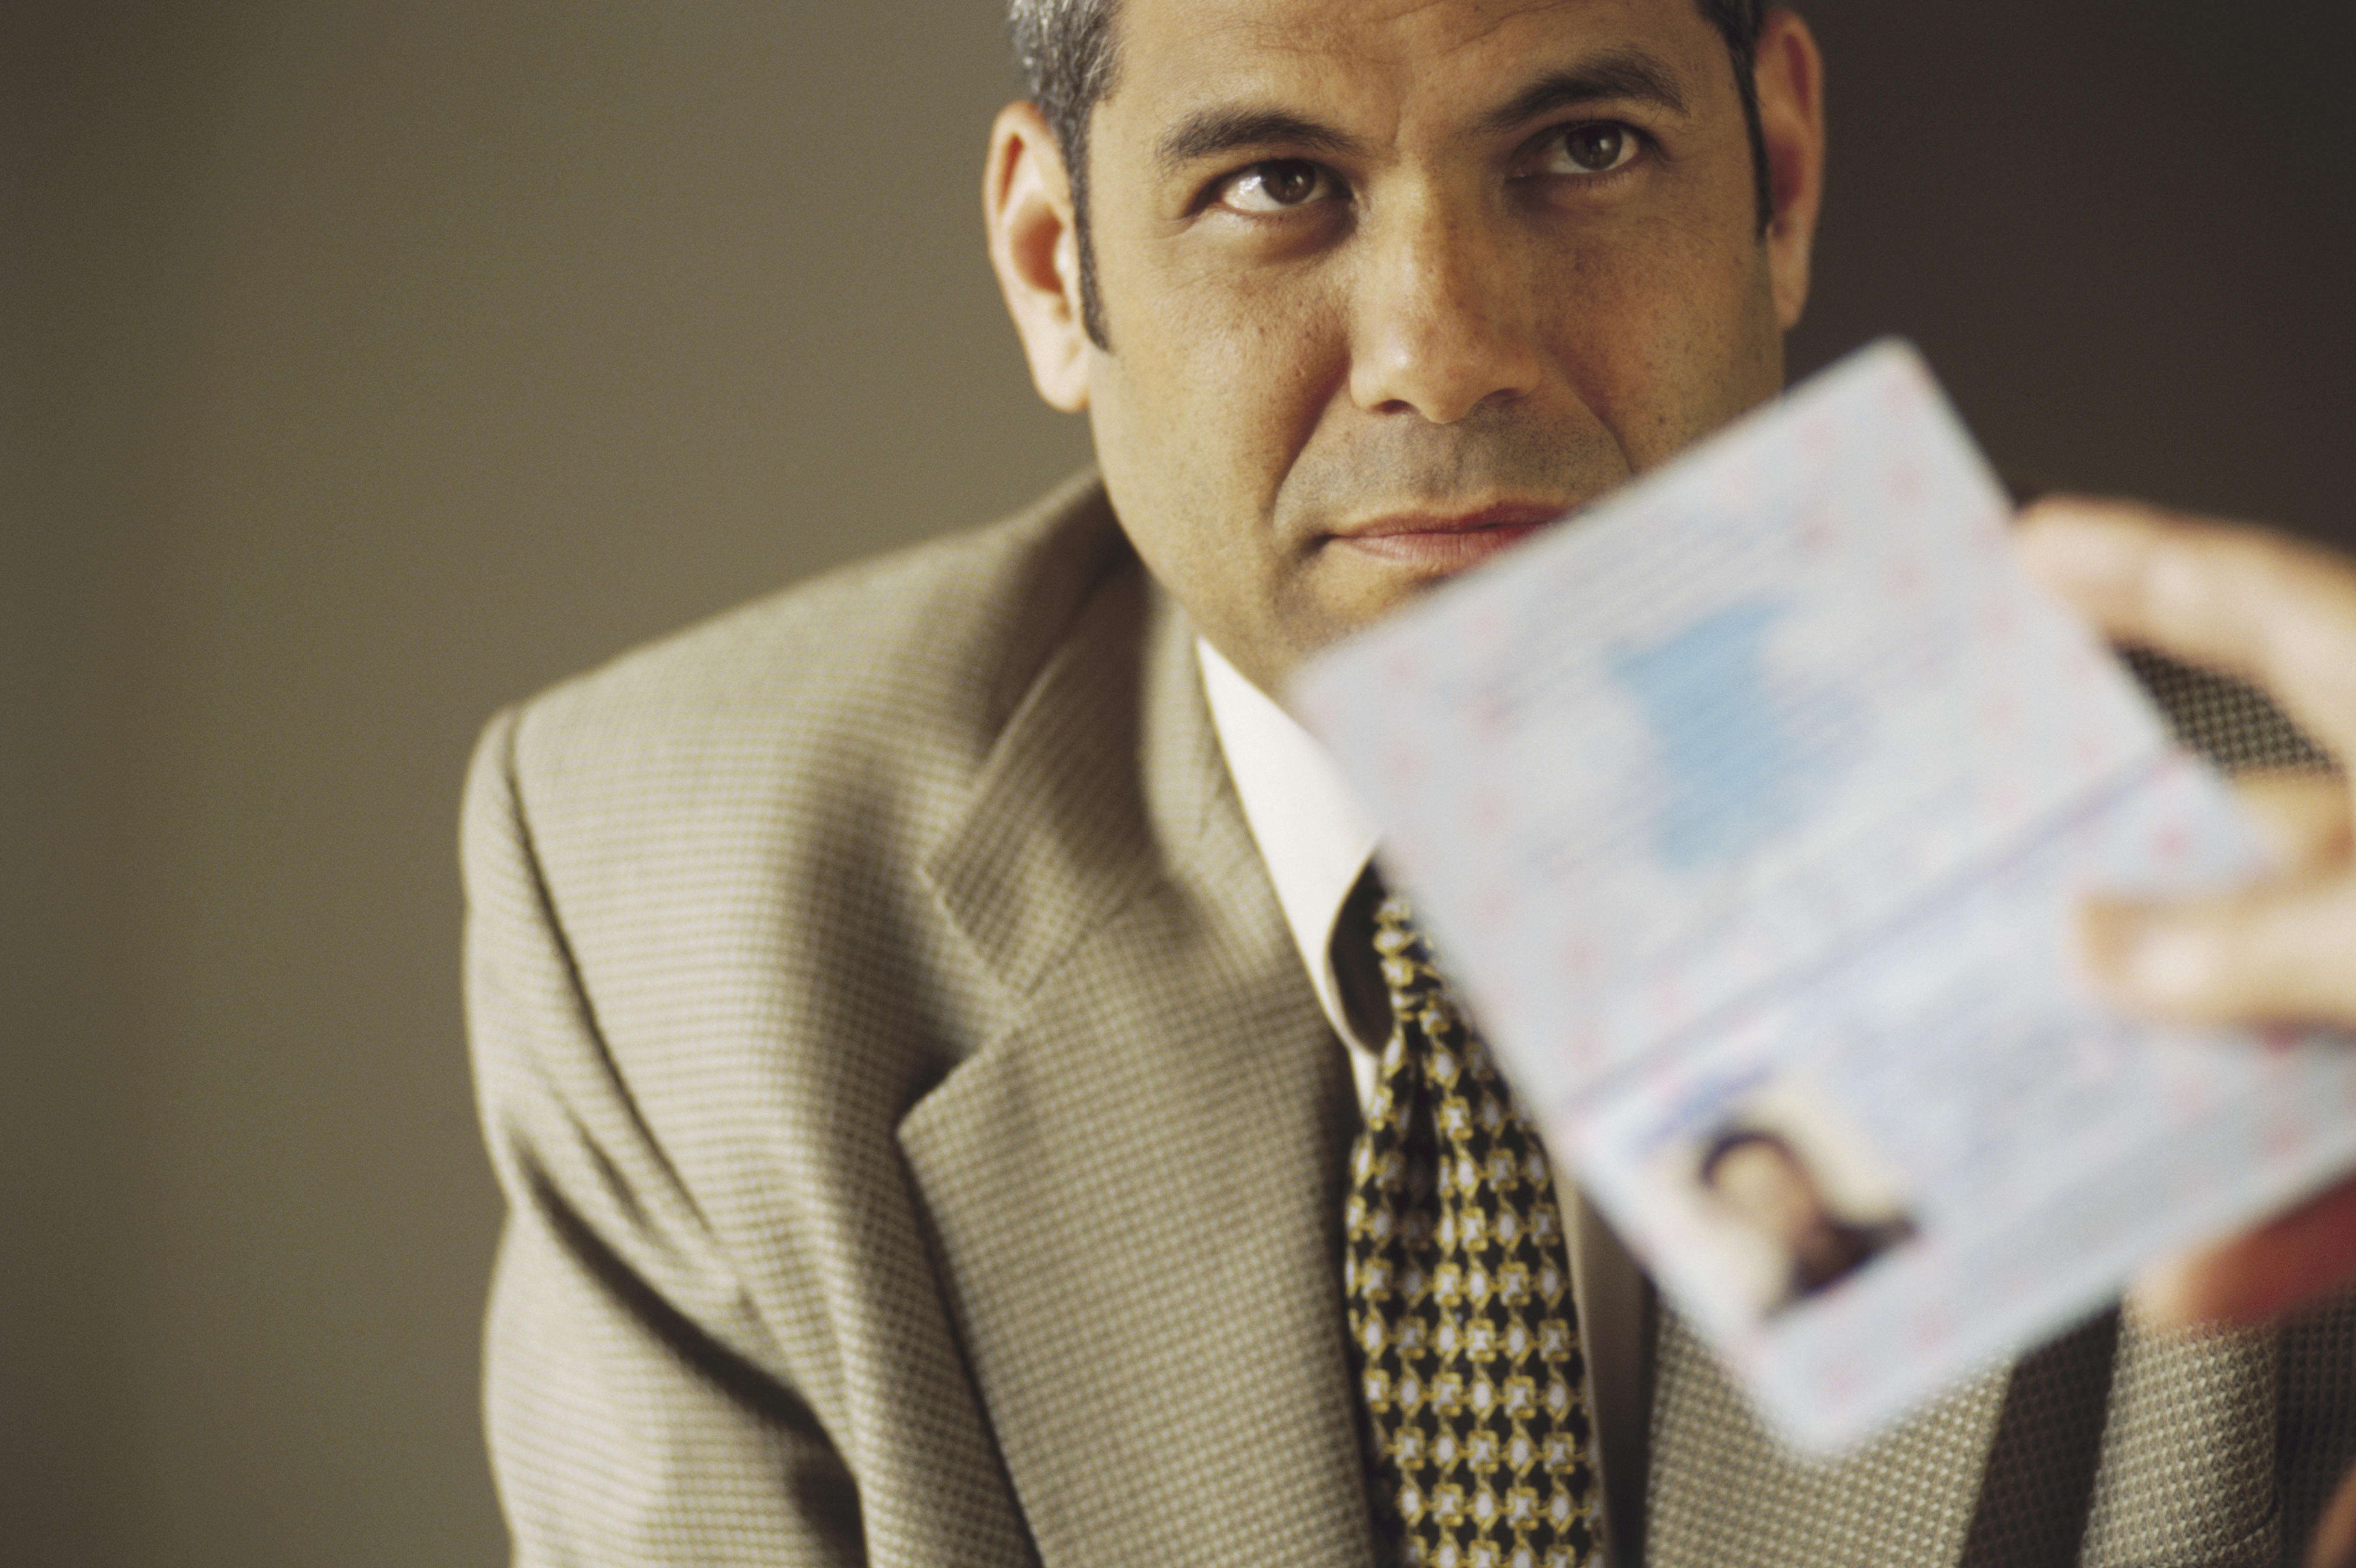 Man's Passport Being Examined